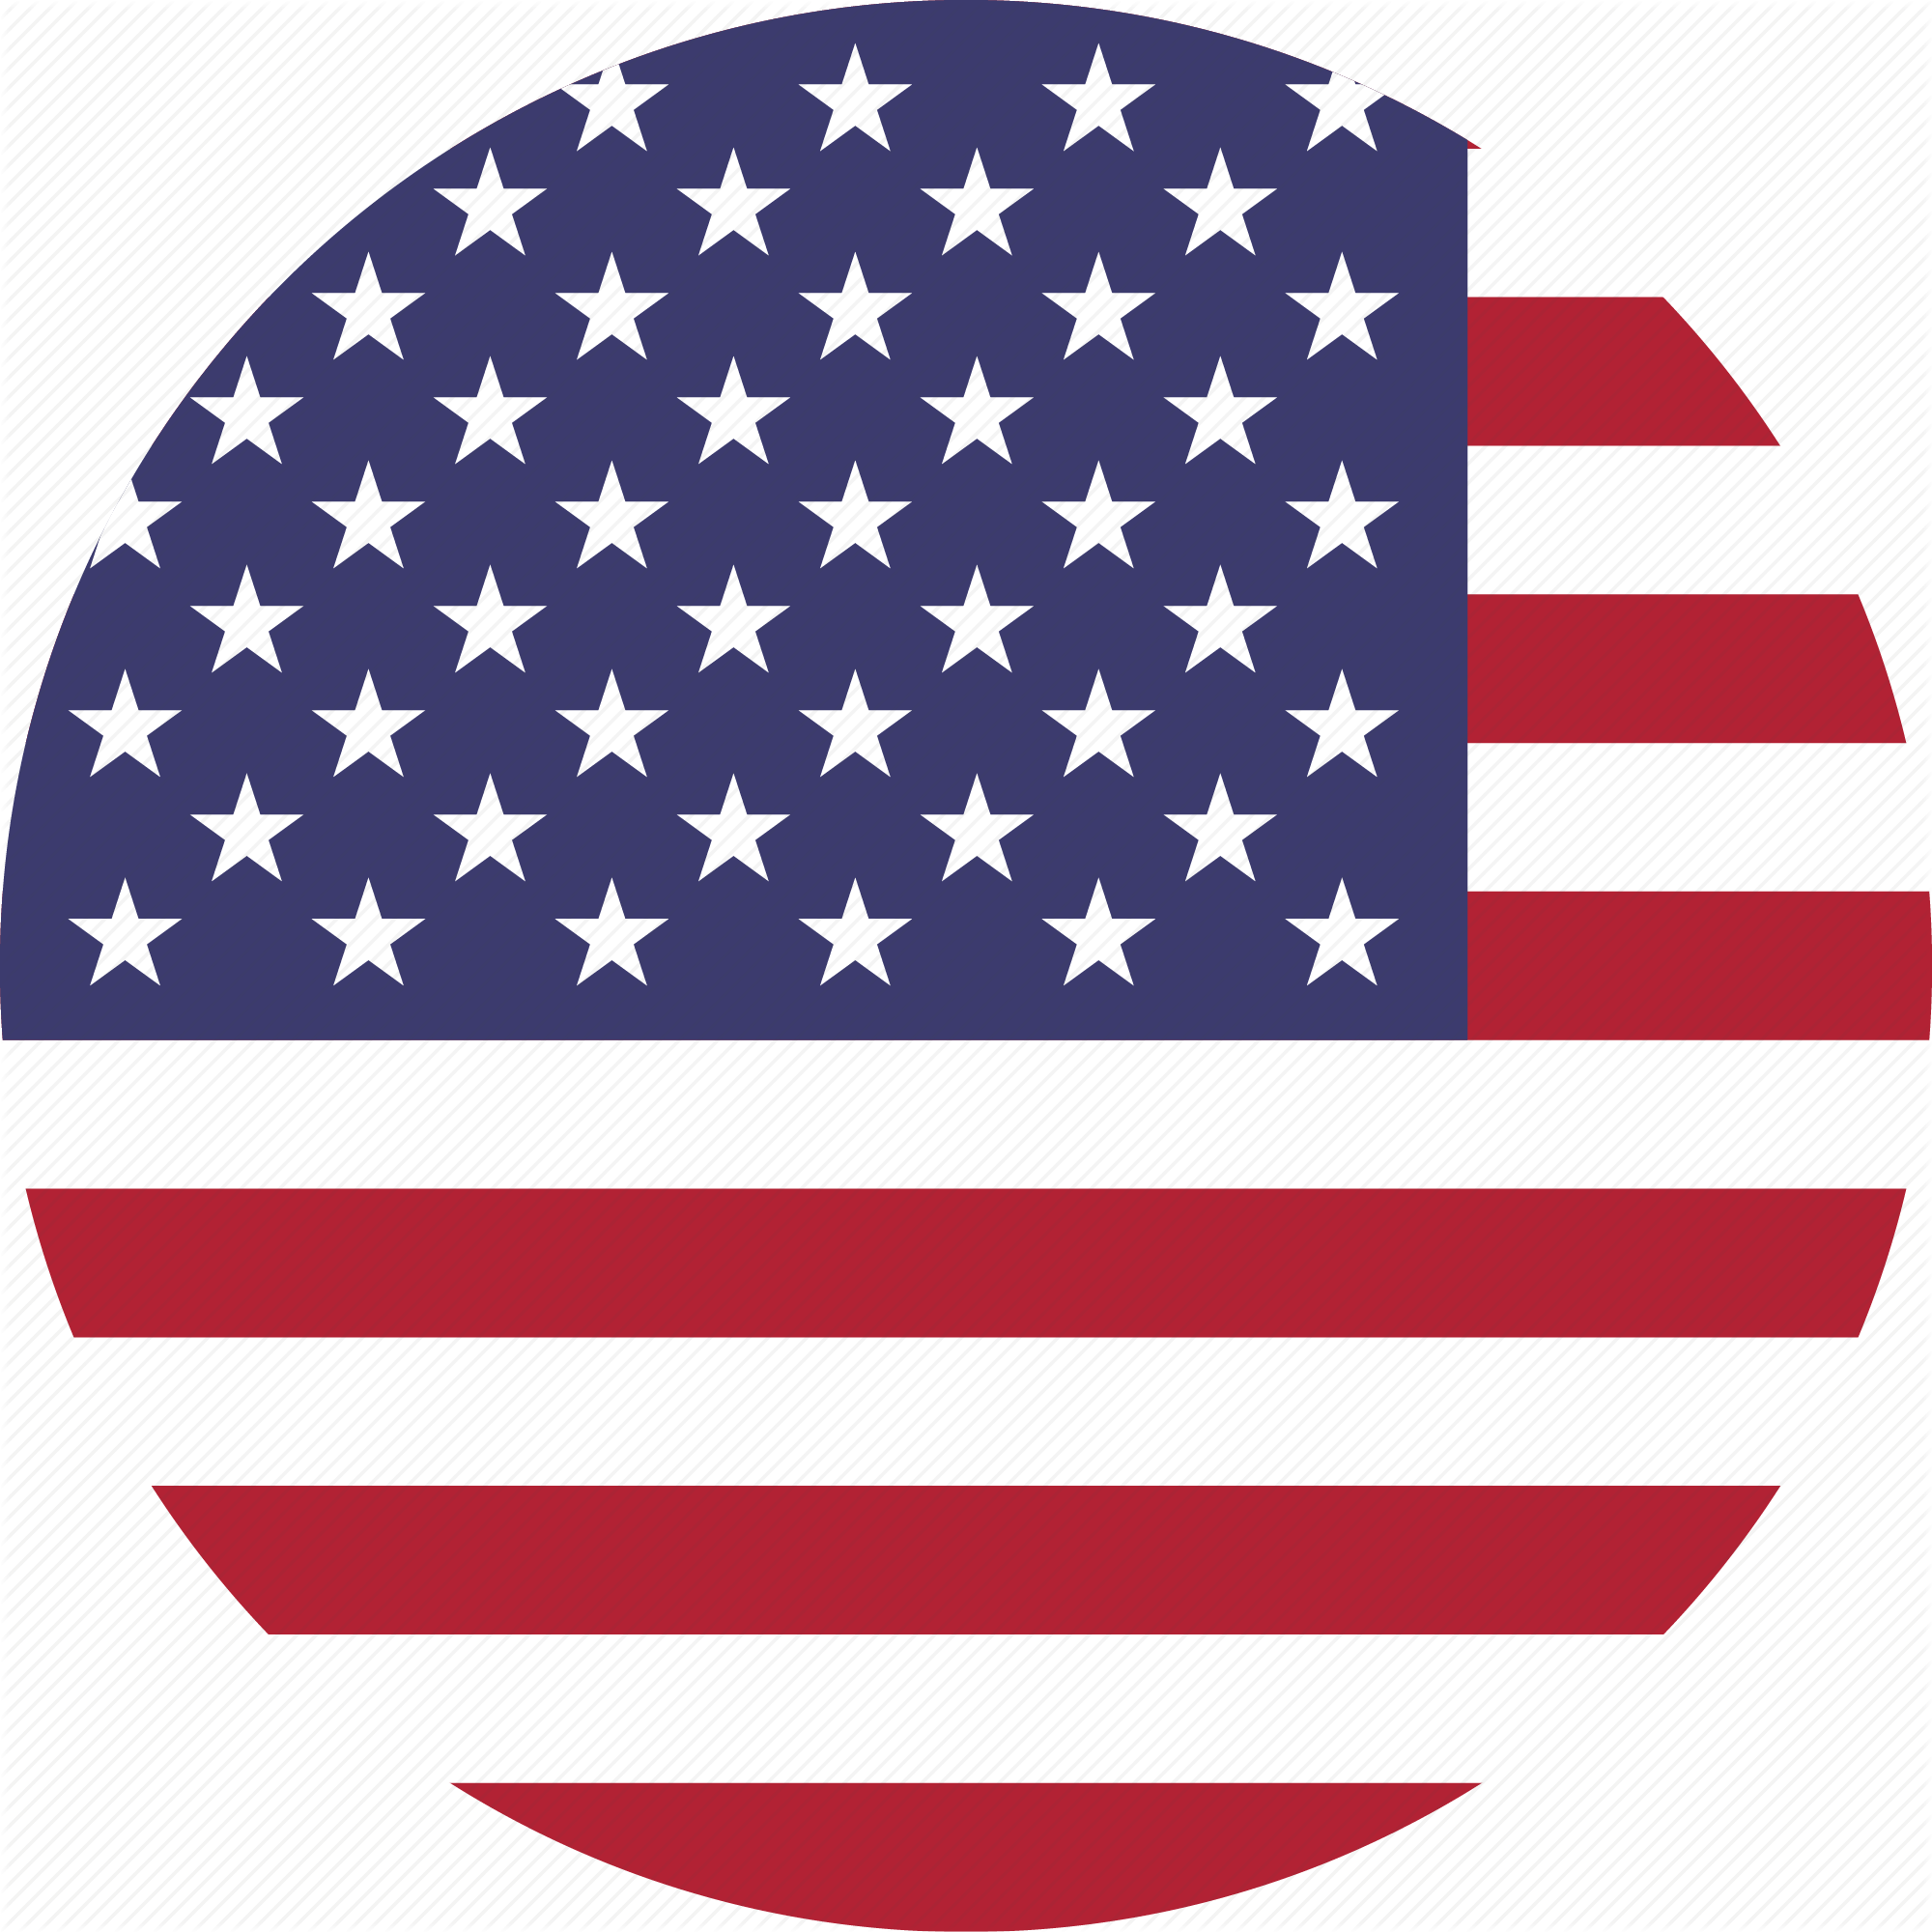 United states flags clip art clip art royalty free download Image of USA Flag – Waving, GIF, PNG, Emoji | Flag Images clip art royalty free download